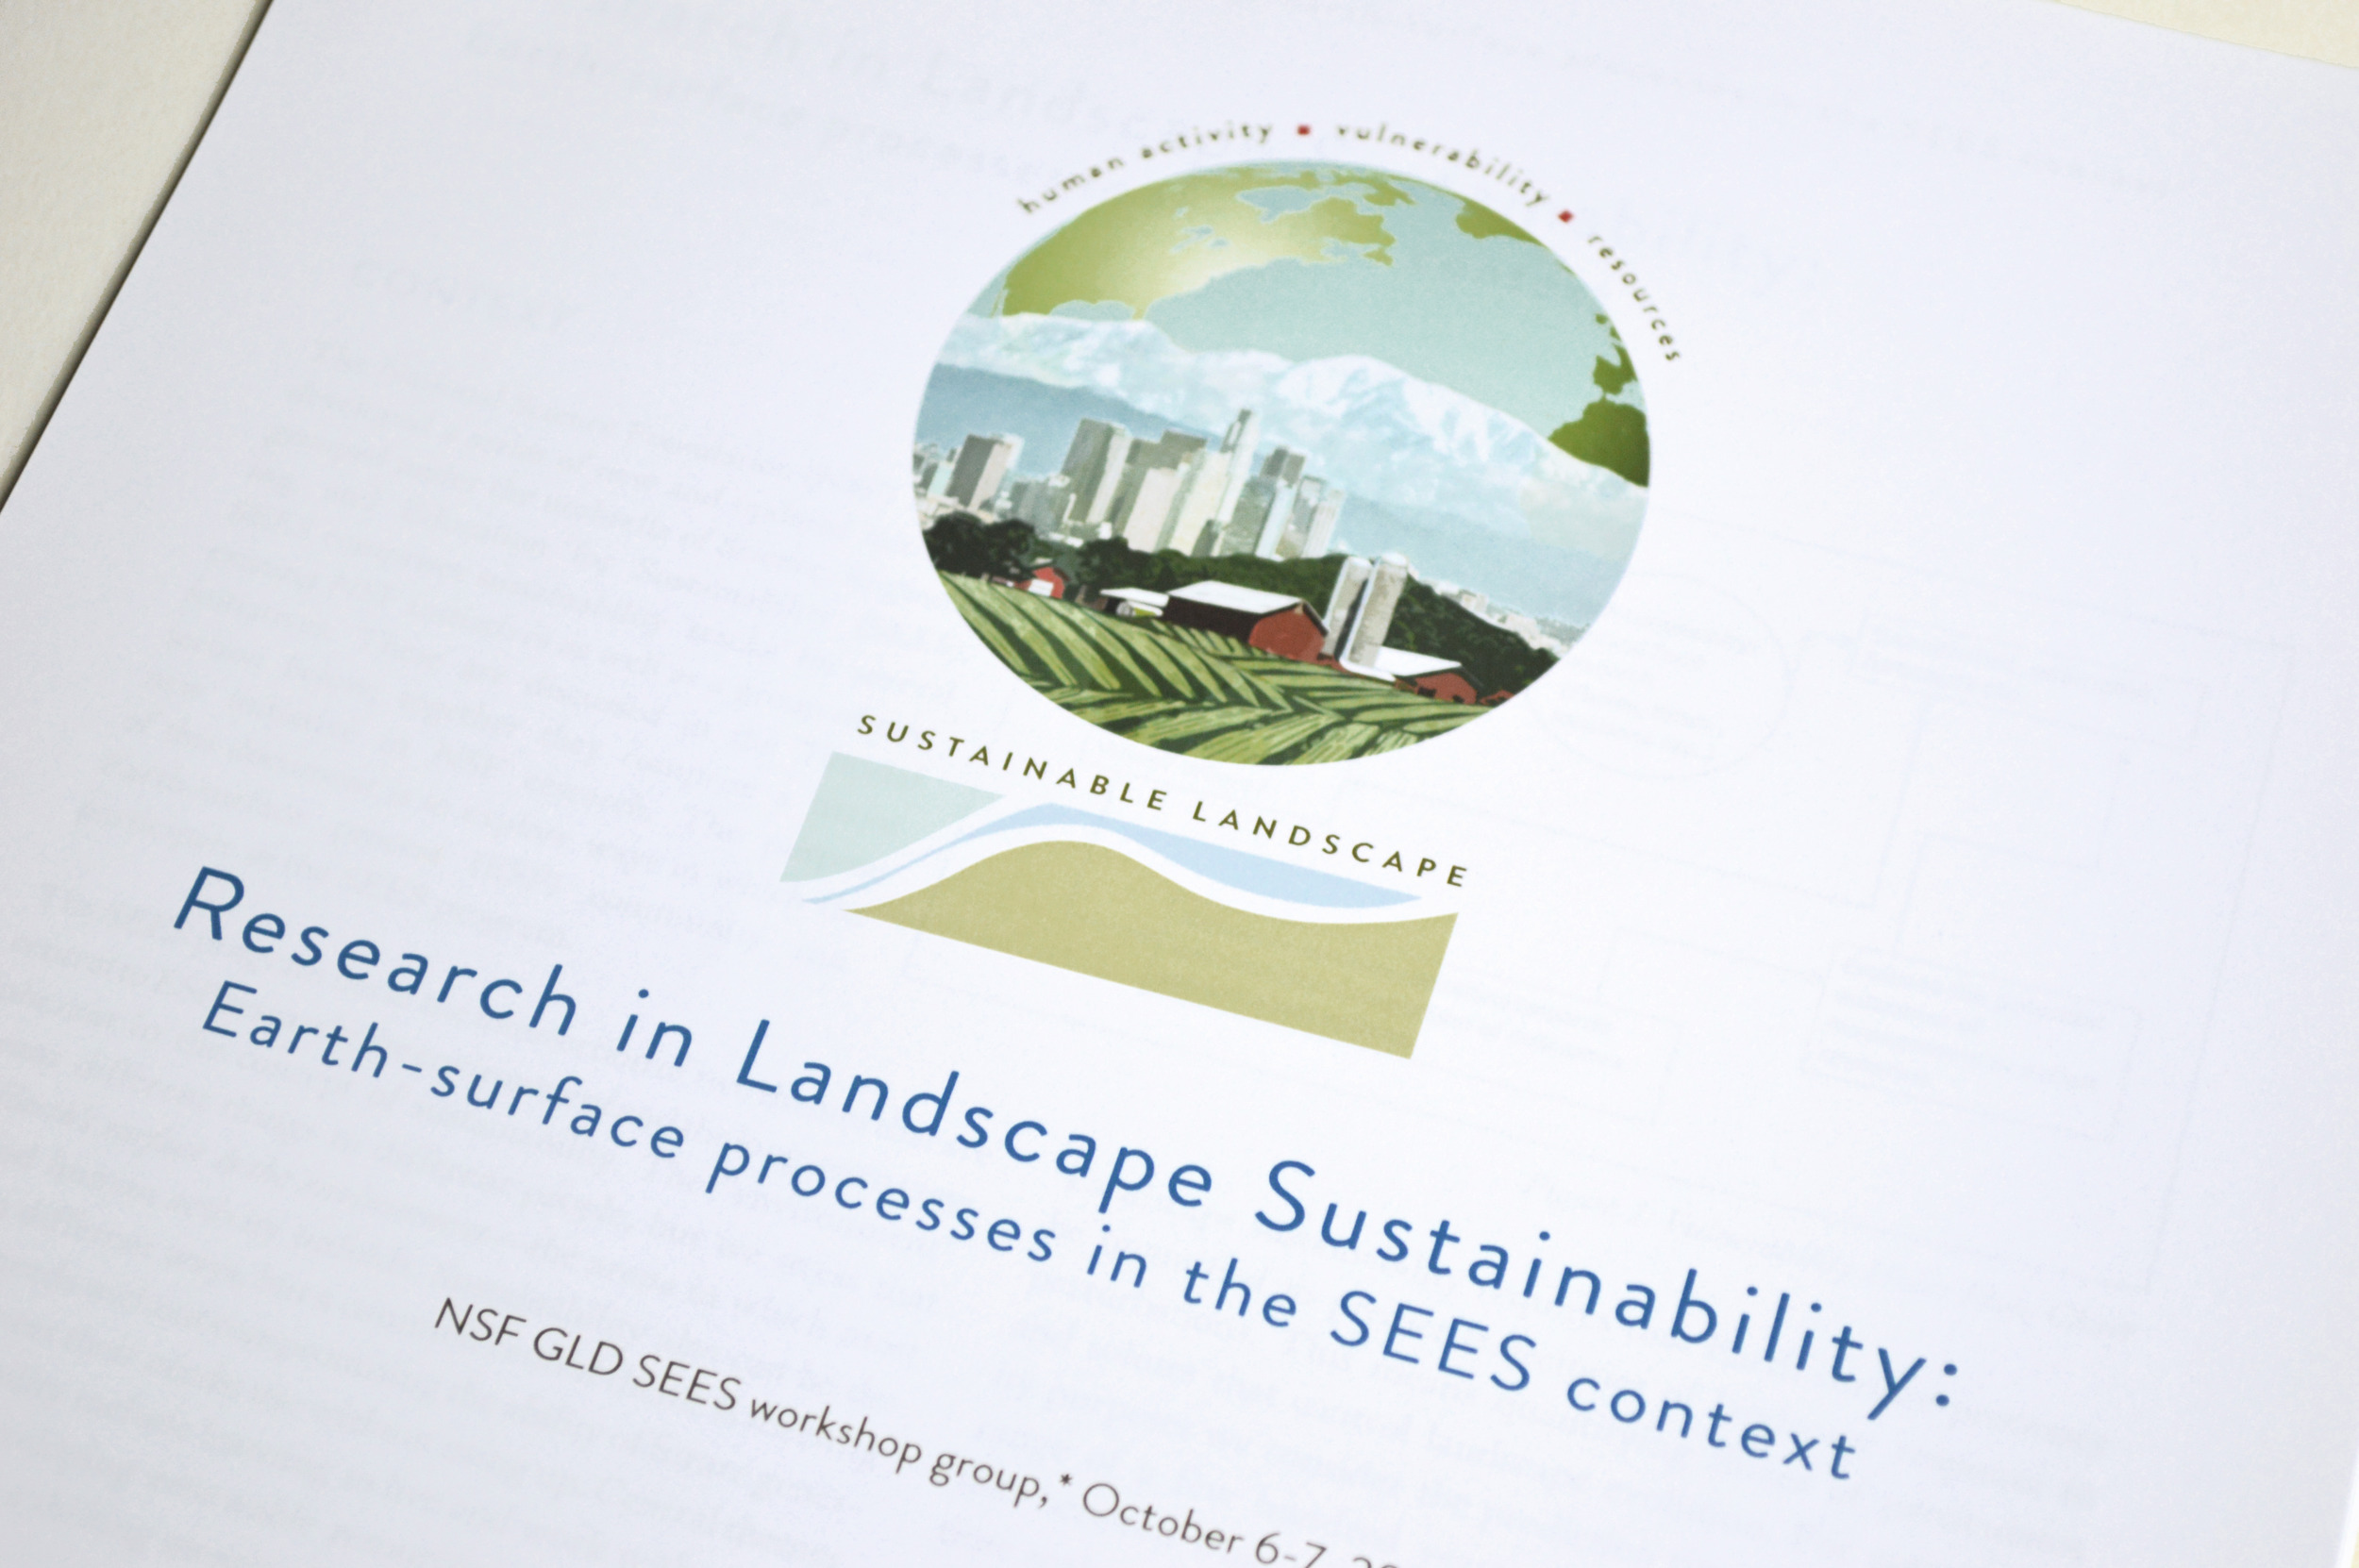 NSF Earth-surface processes report  http://www.nced.umn.edu/system/files/_SLAreportFINALupd.pdf